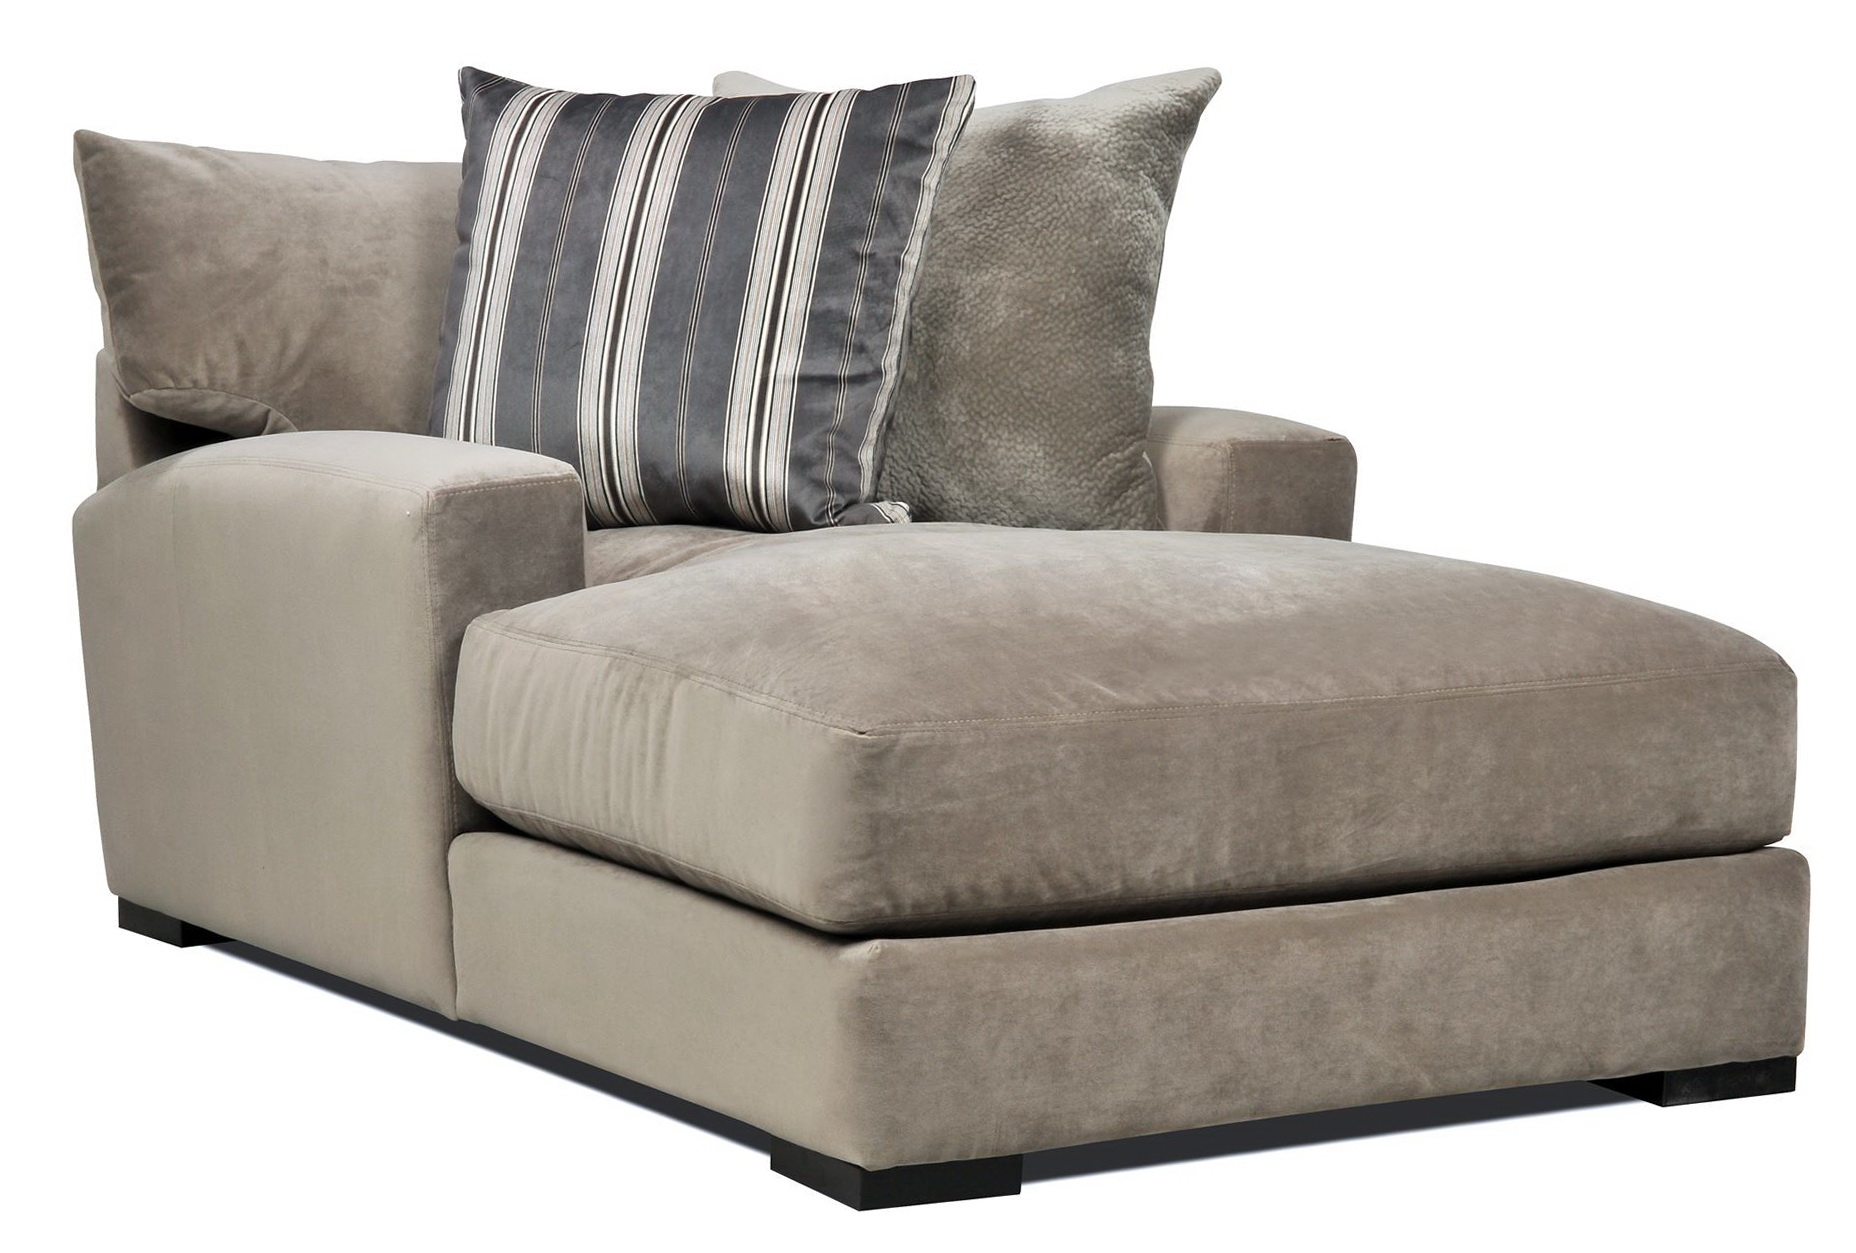 Preferred Double Wide Chaise Lounge Indoor With 2 Cushions (View 11 of 15)